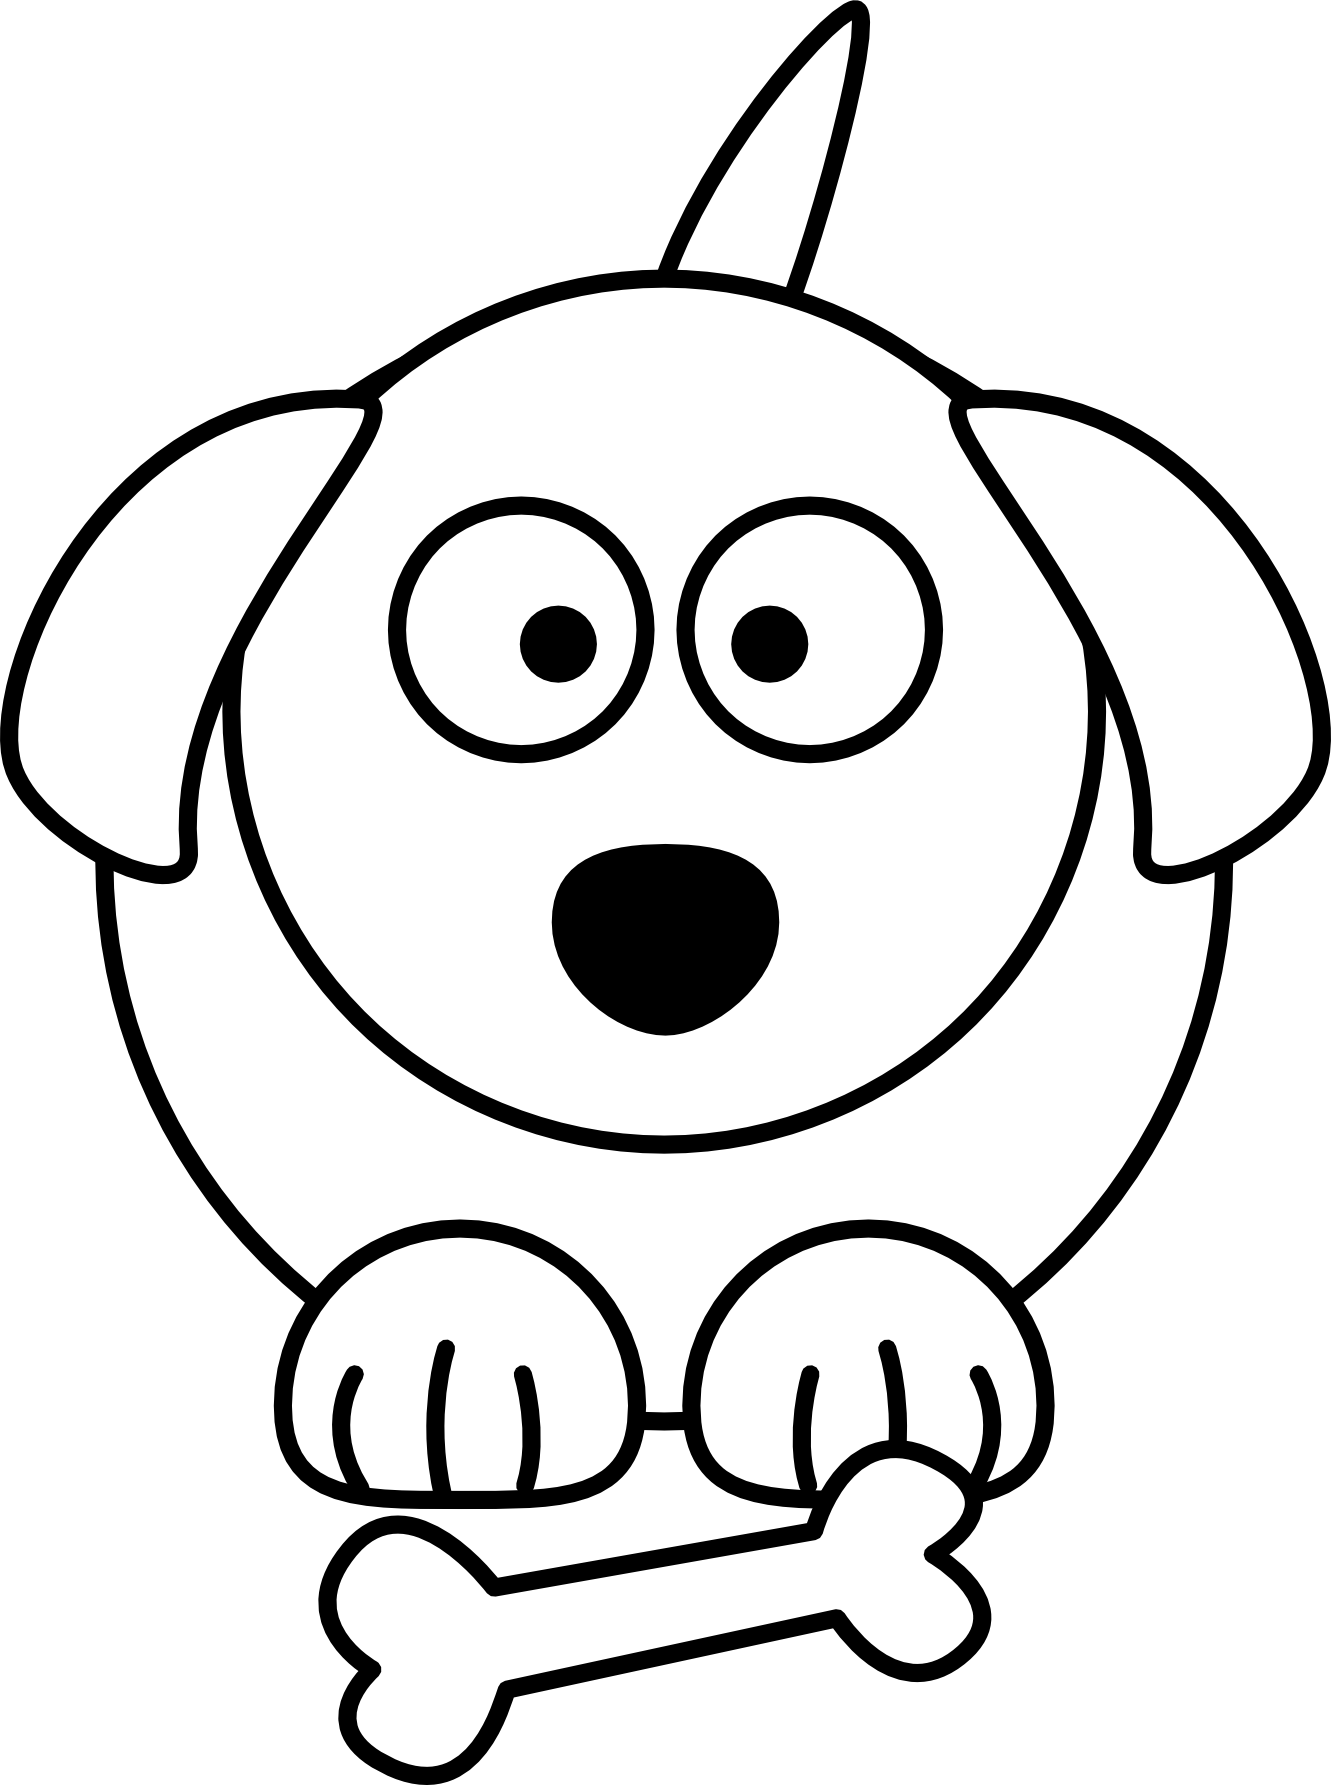 Funny dog clipart black and white png Dog Line Drawing Clipart Best Lemmling Cartoon Black White Art ... png